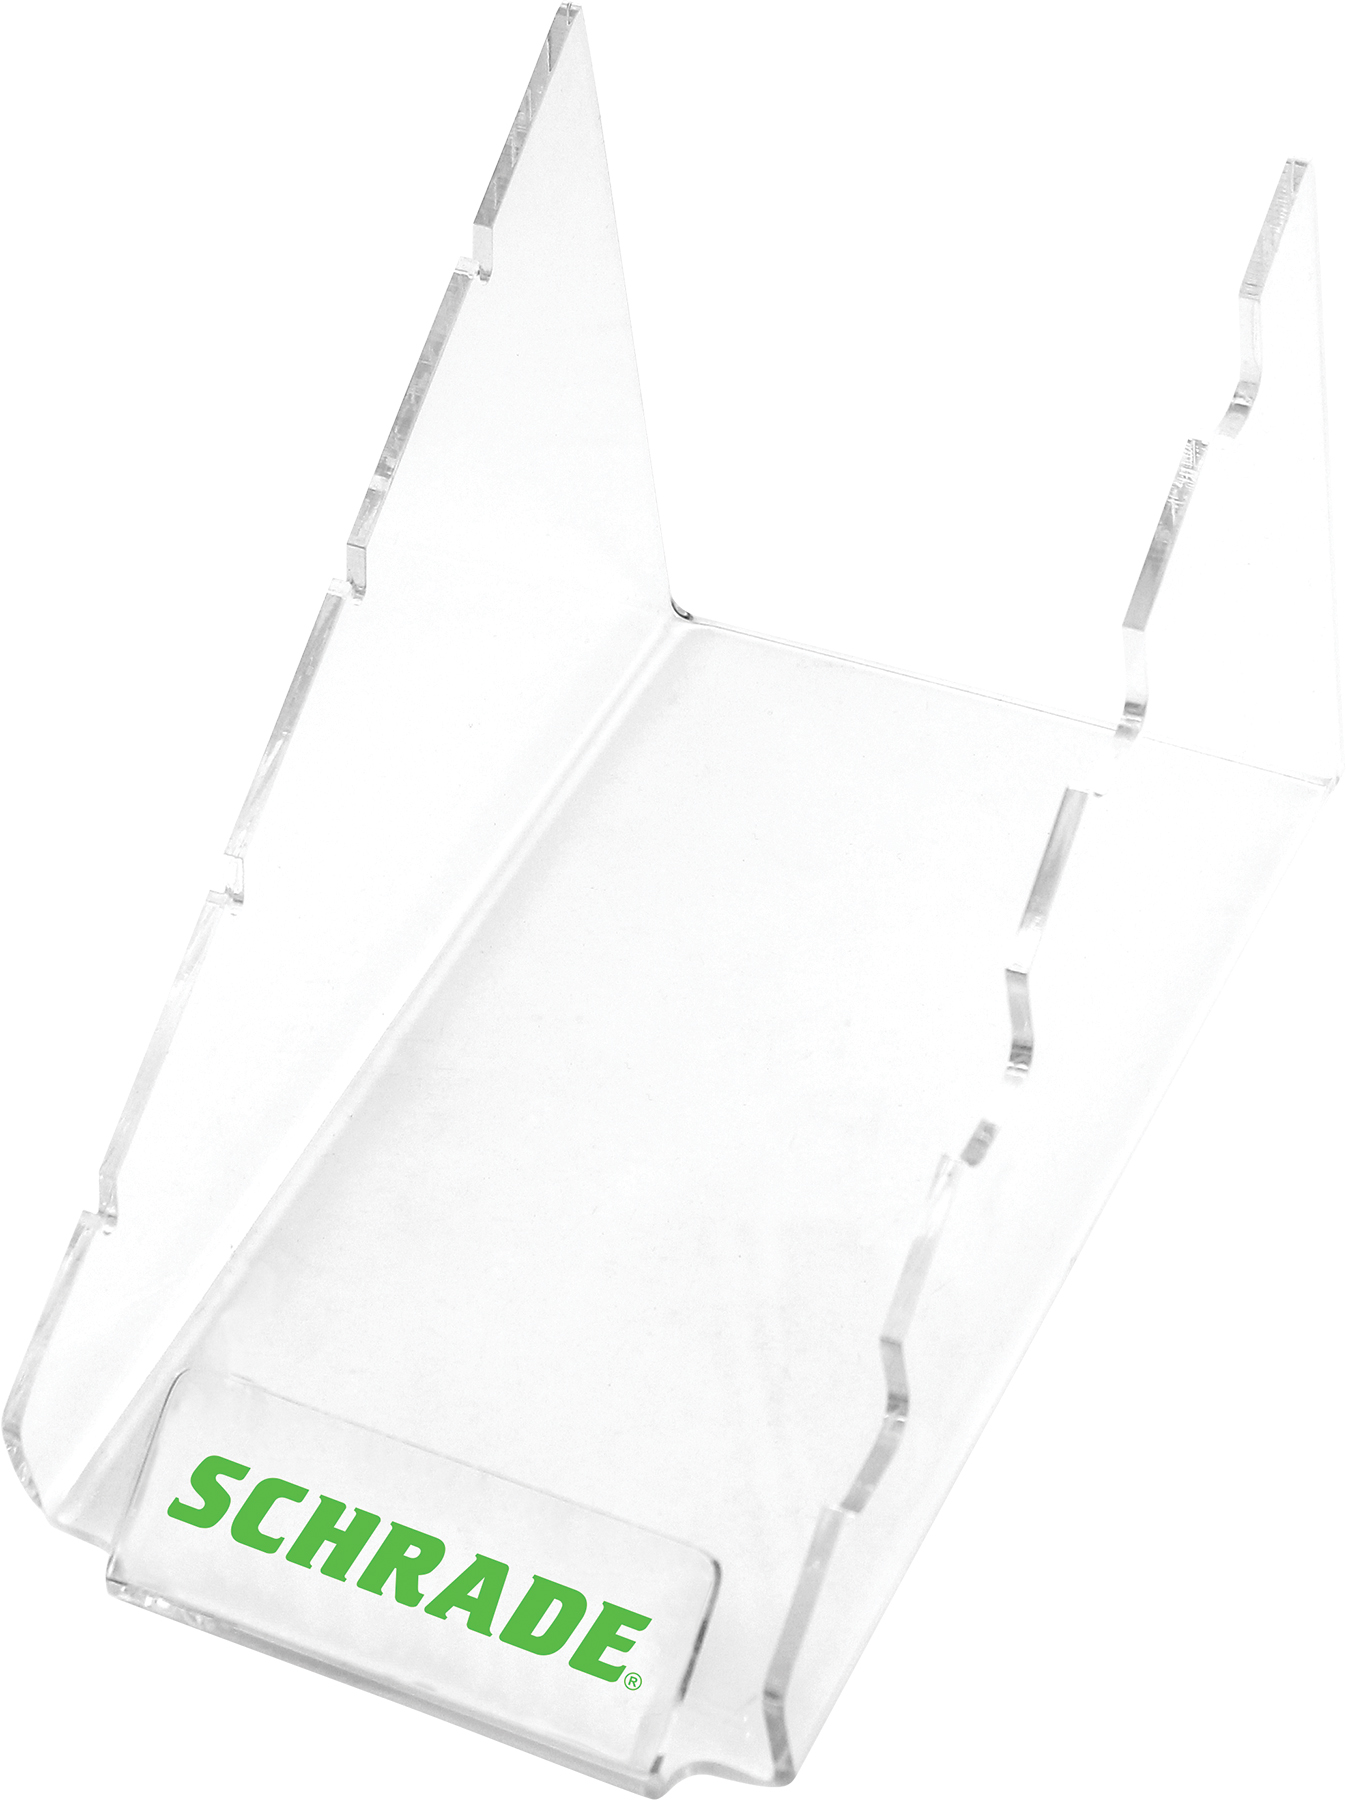 PLEXSD - Schrade Plexiglass Stand Display